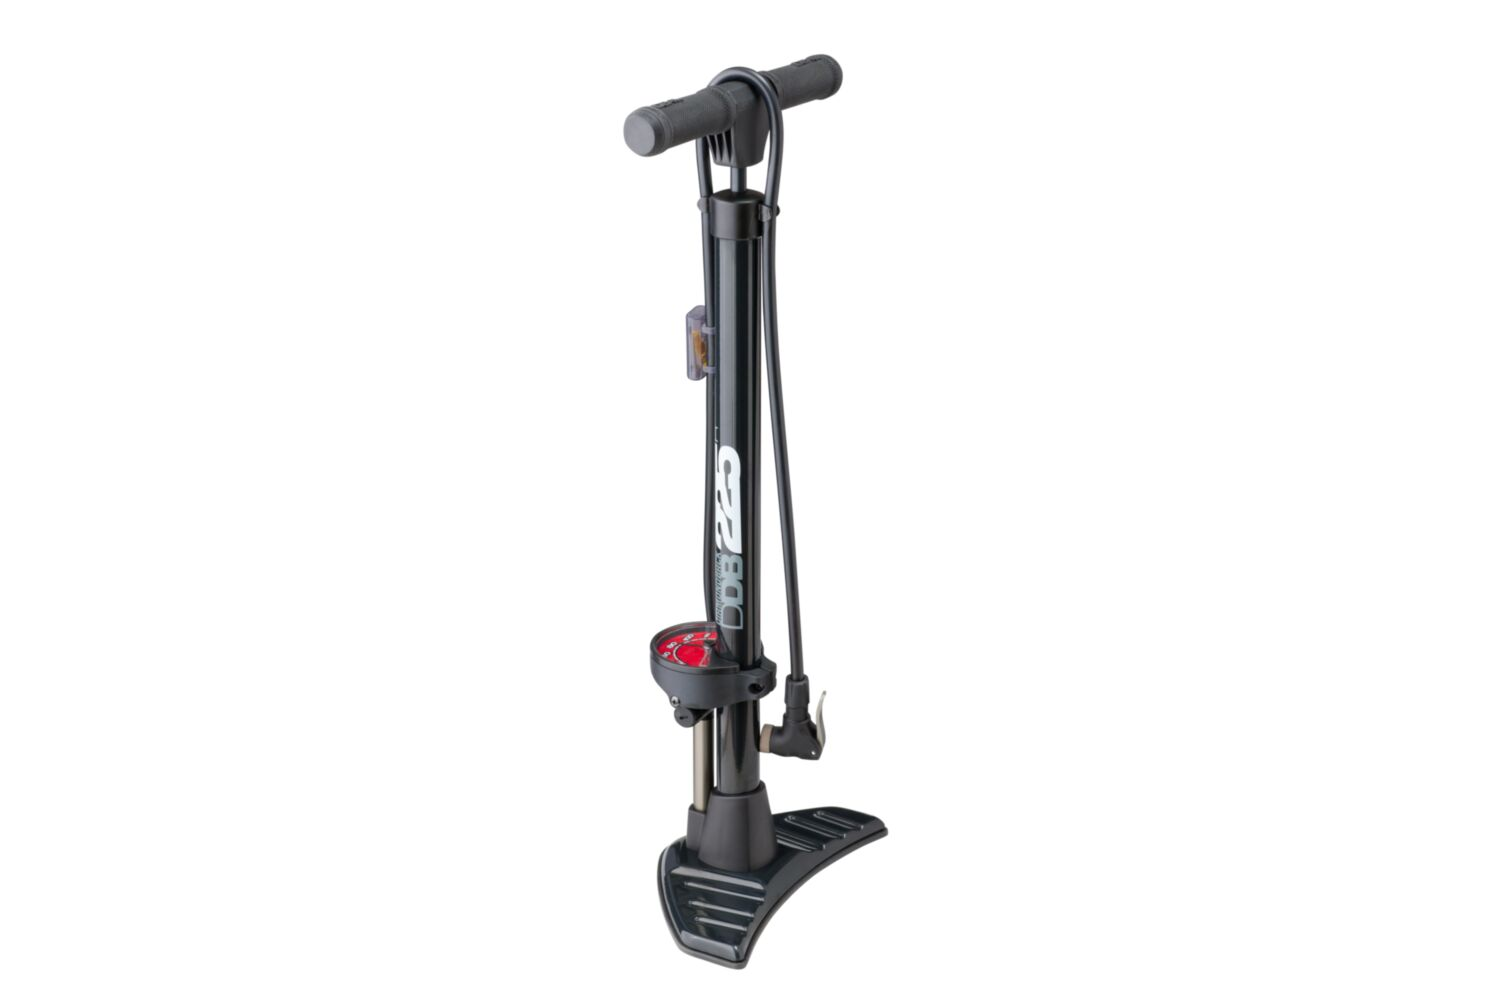 DDB225R Floor Bike Pump